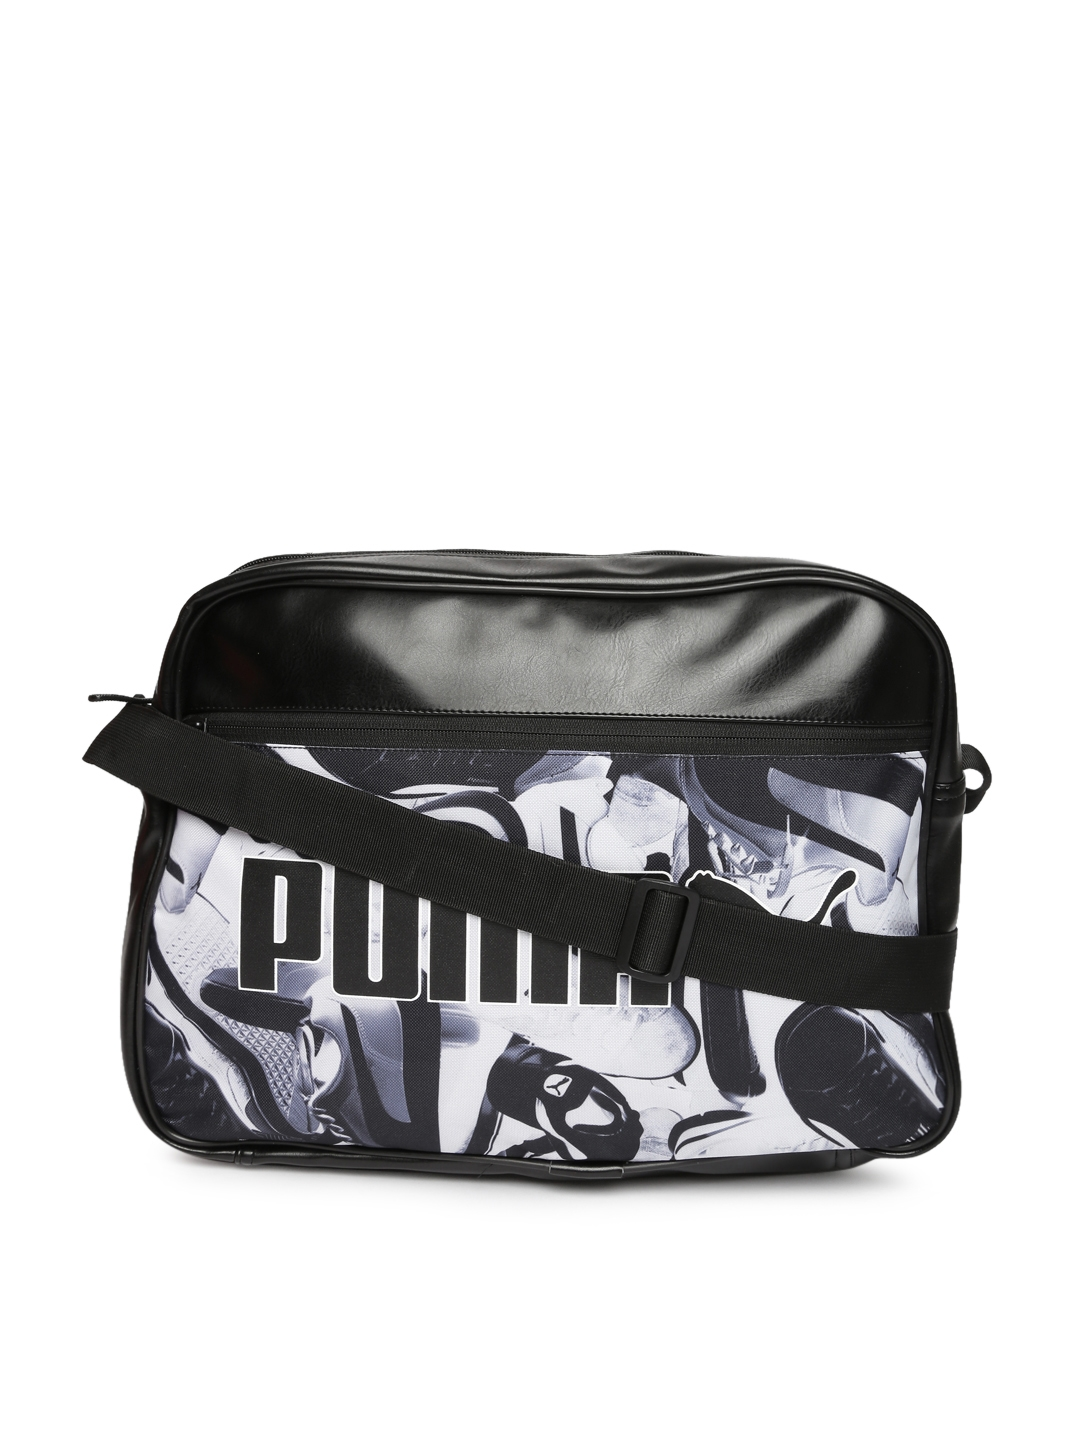 a22c0cb4a9 Buy Puma Unisex Black   White Printed Campus Reporter Laptop Bag ...